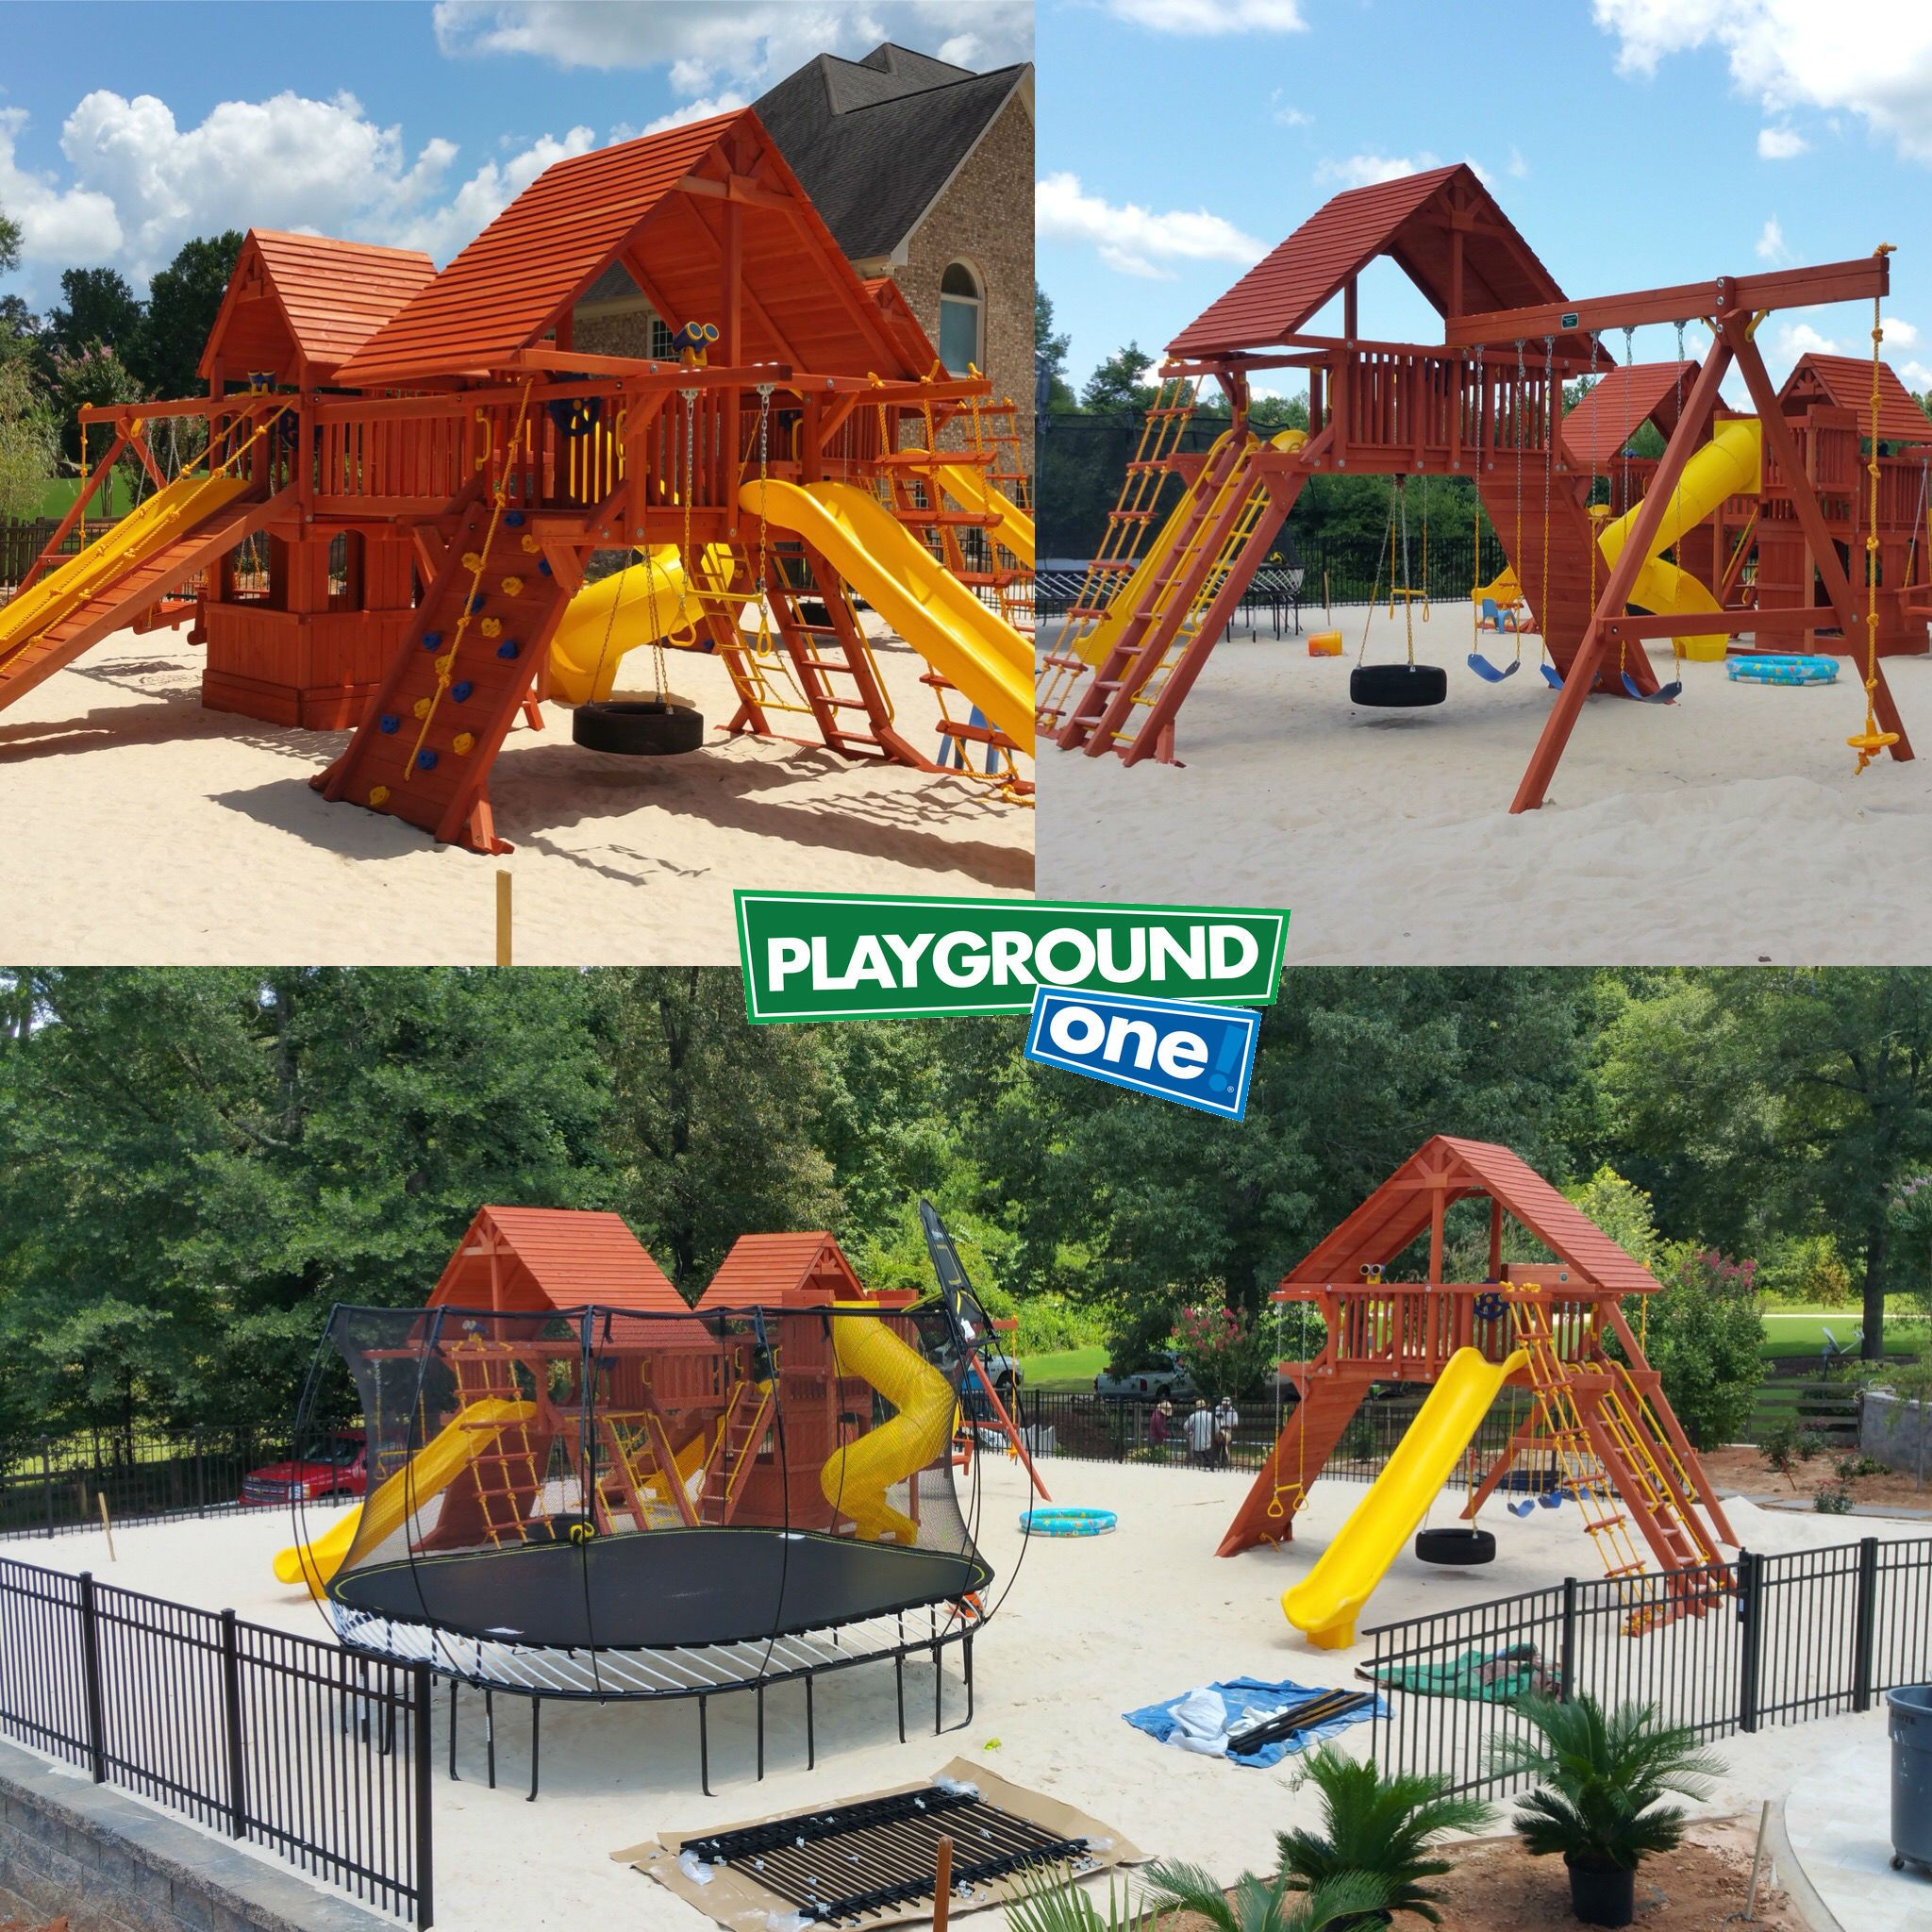 Turbo Deluxe Dual Maxed Out And Extreme Playcenter Business For Kids Wood Roof Kids Imagination